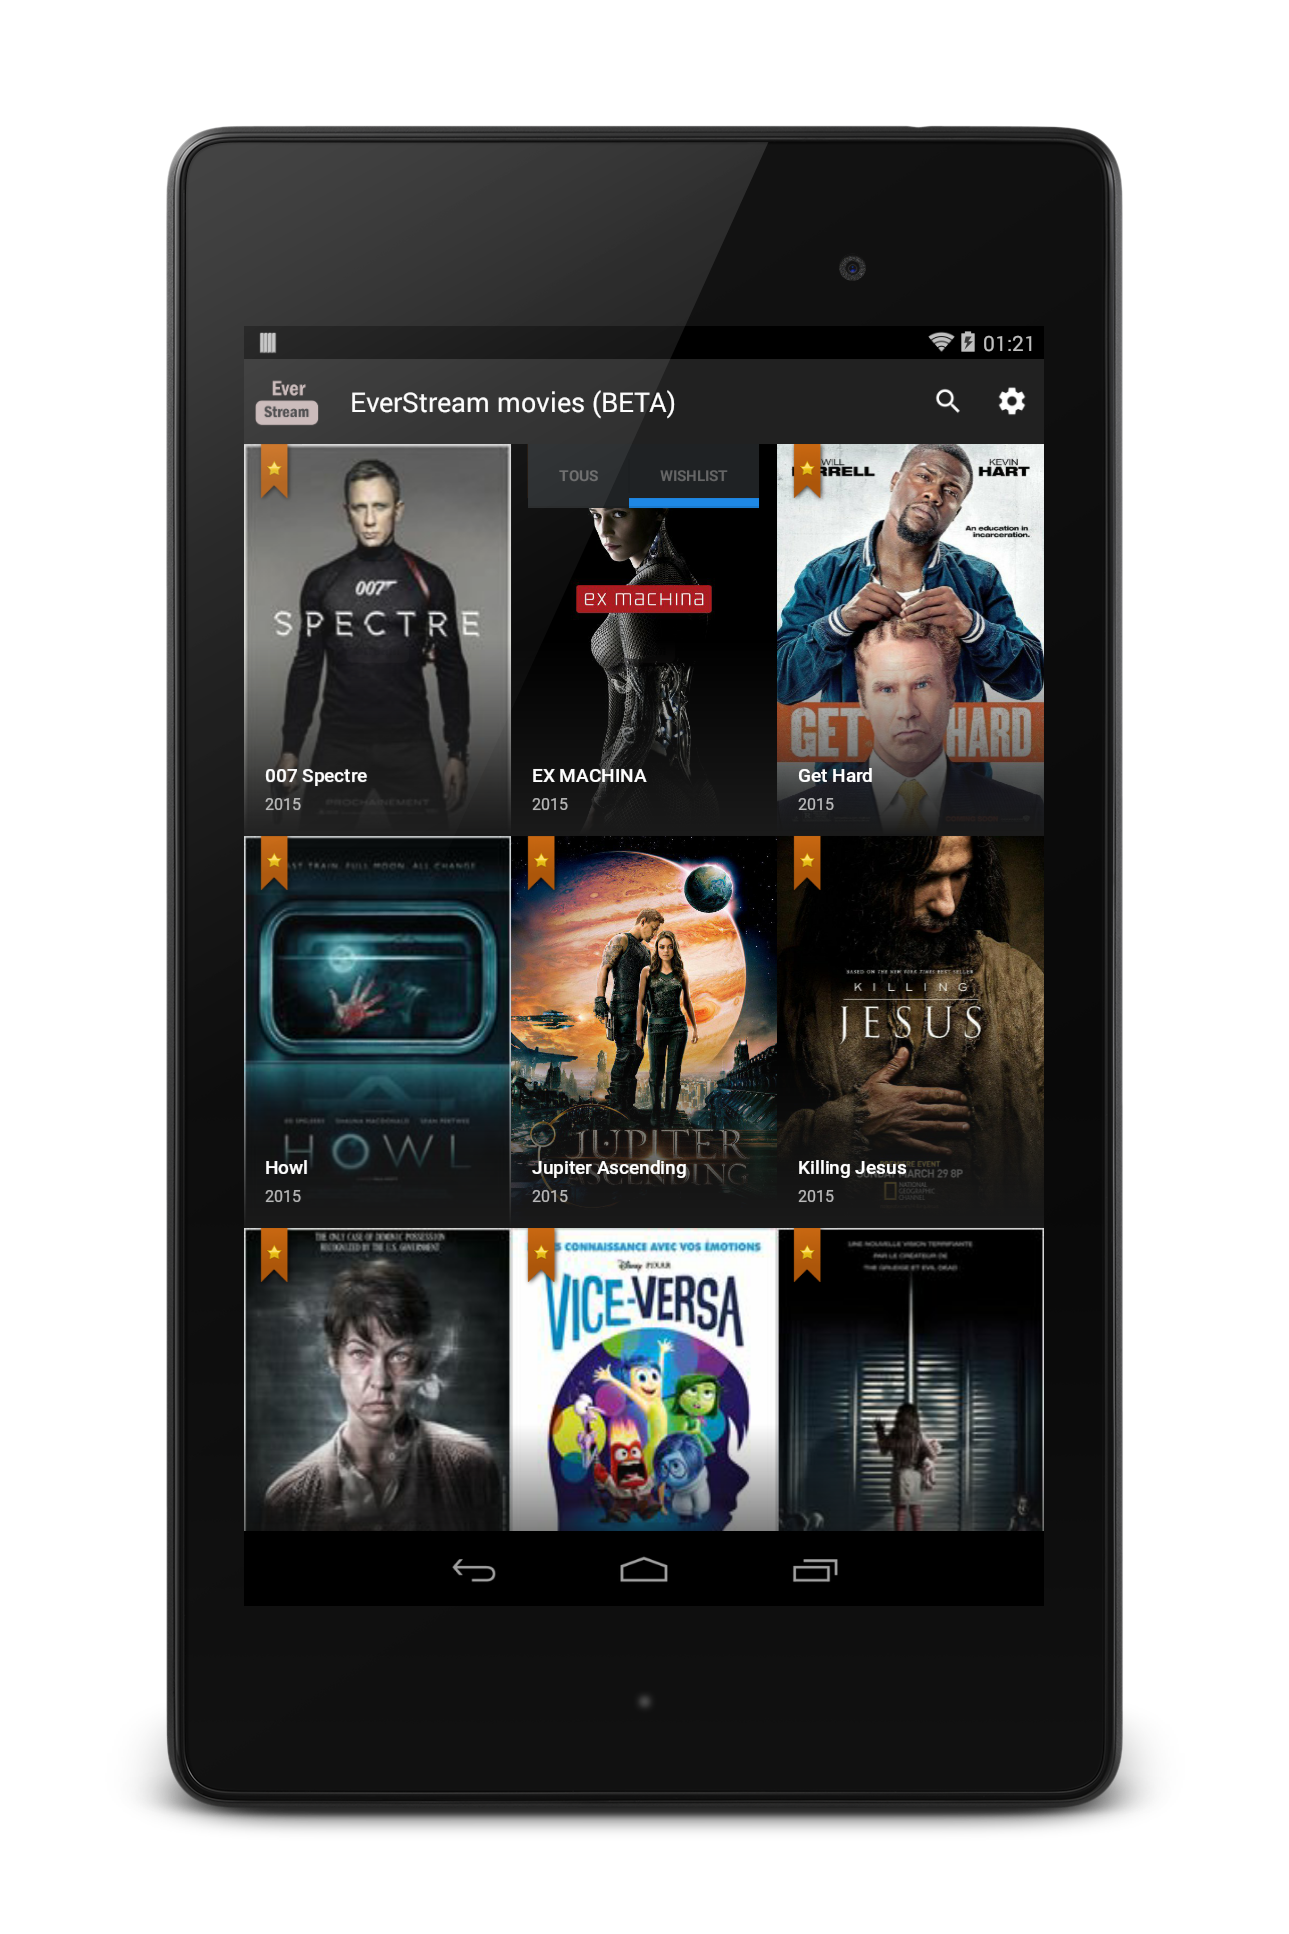 everstream movies apk